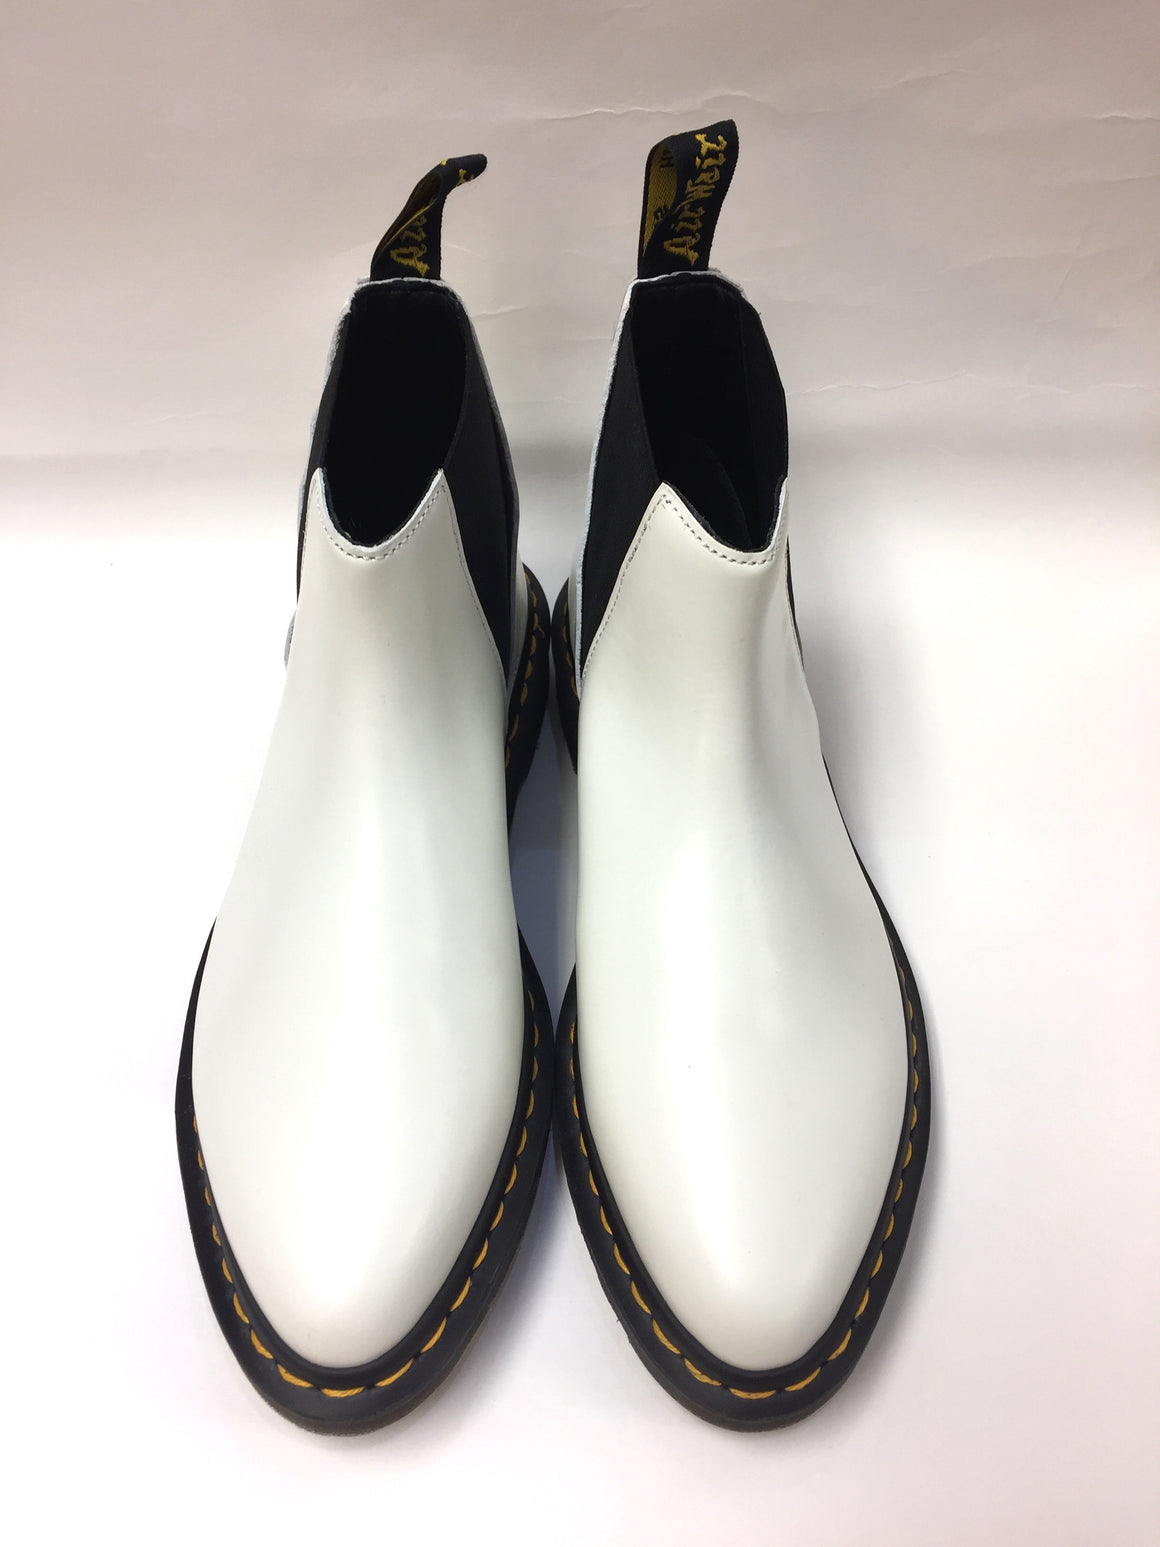 DR. MARTENS - Air Wair  New in the Box White Polished Smooth Leather Women's Chelsea Boots Size: US 9 / UK 7 / EU 41